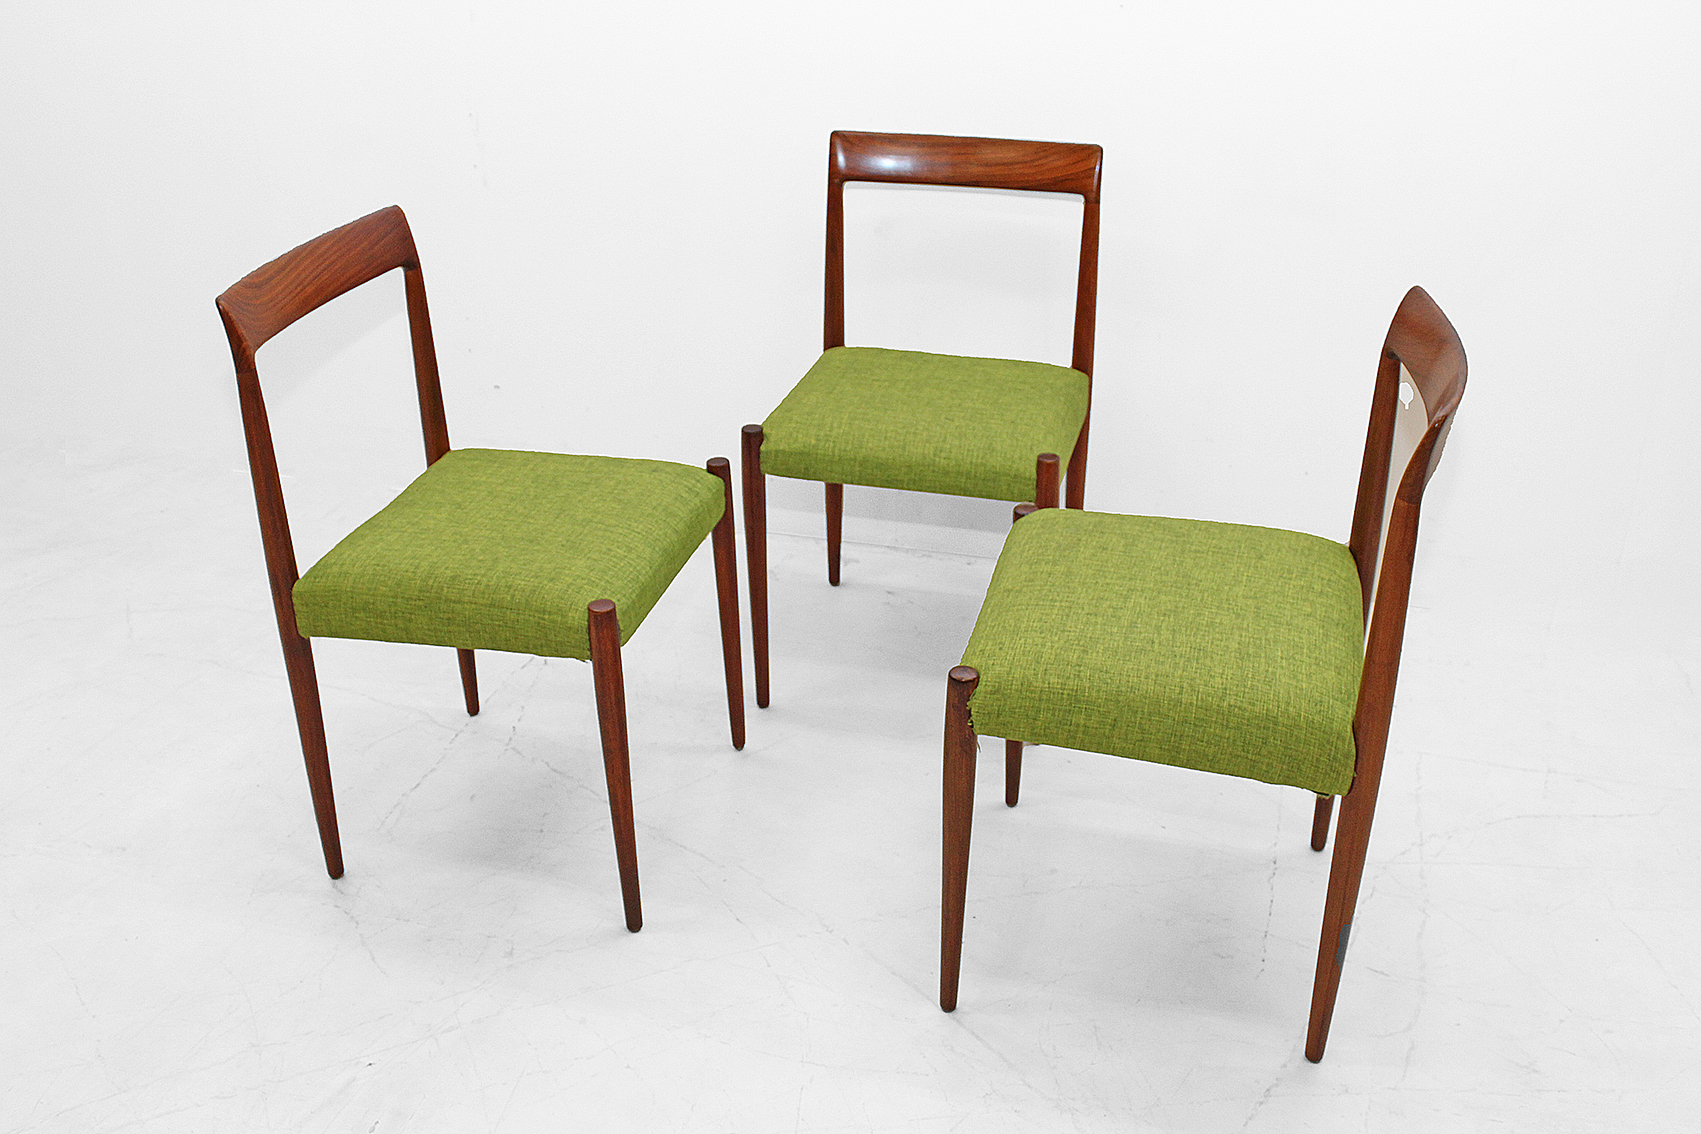 set of tree danish chairs in brazilian rosewood.